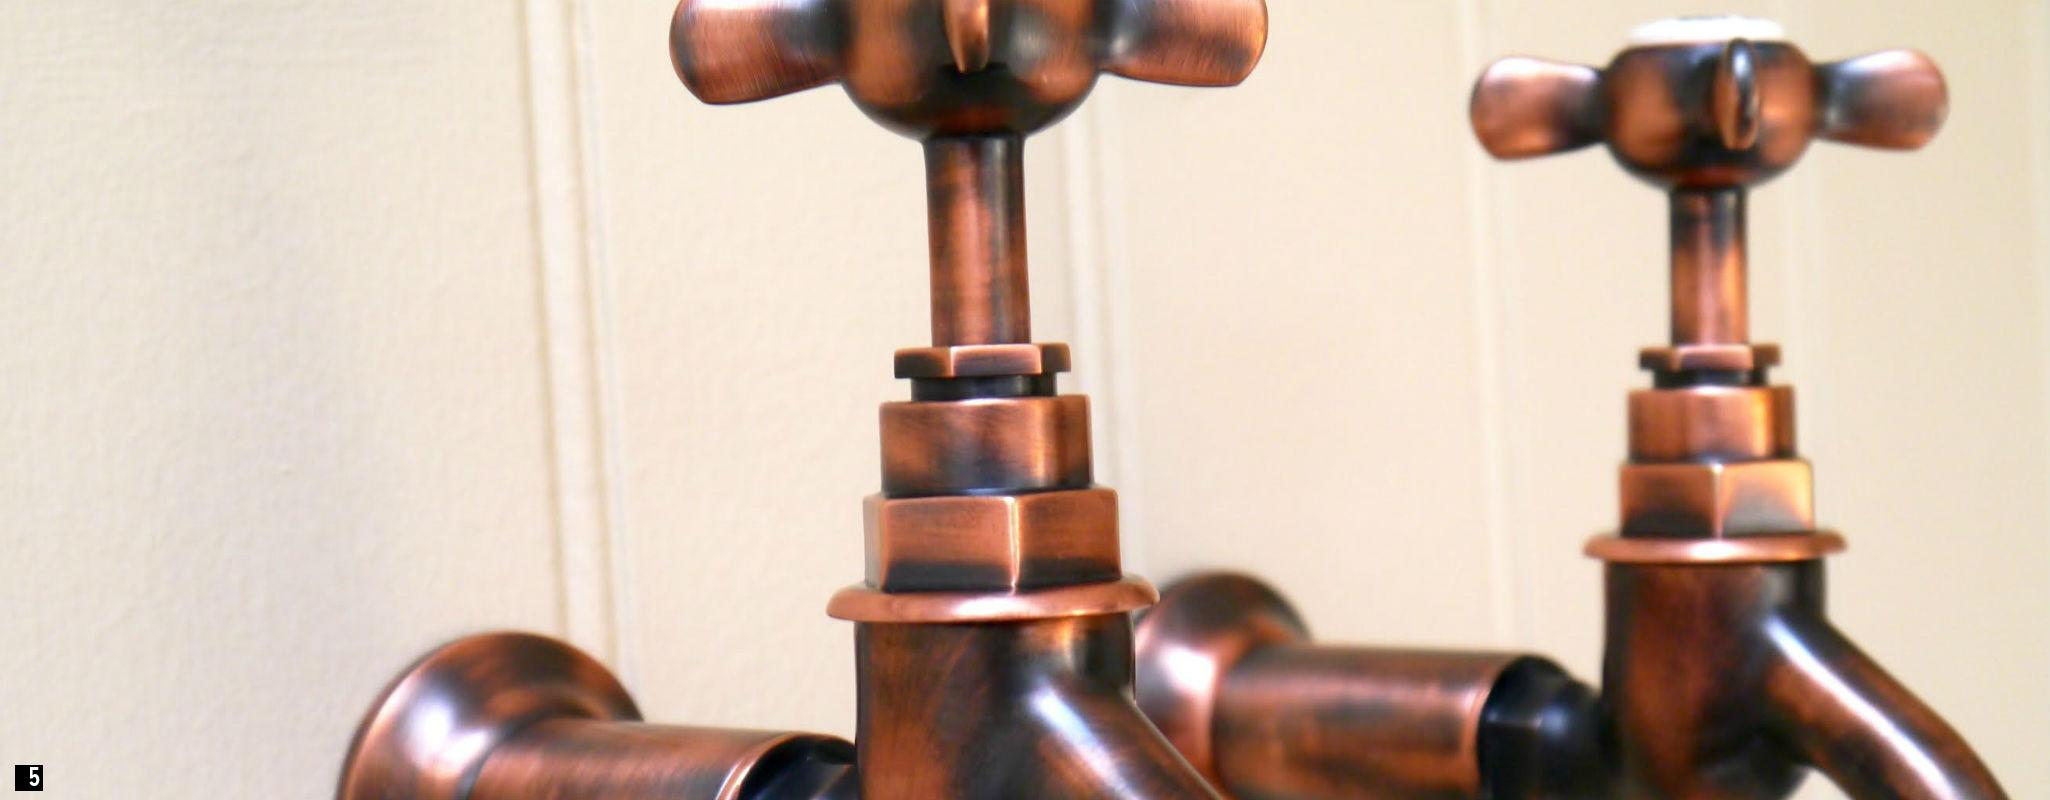 Weathered Copper Bib Taps , Copper Kitchen Taps , Bib Taps, Chadder